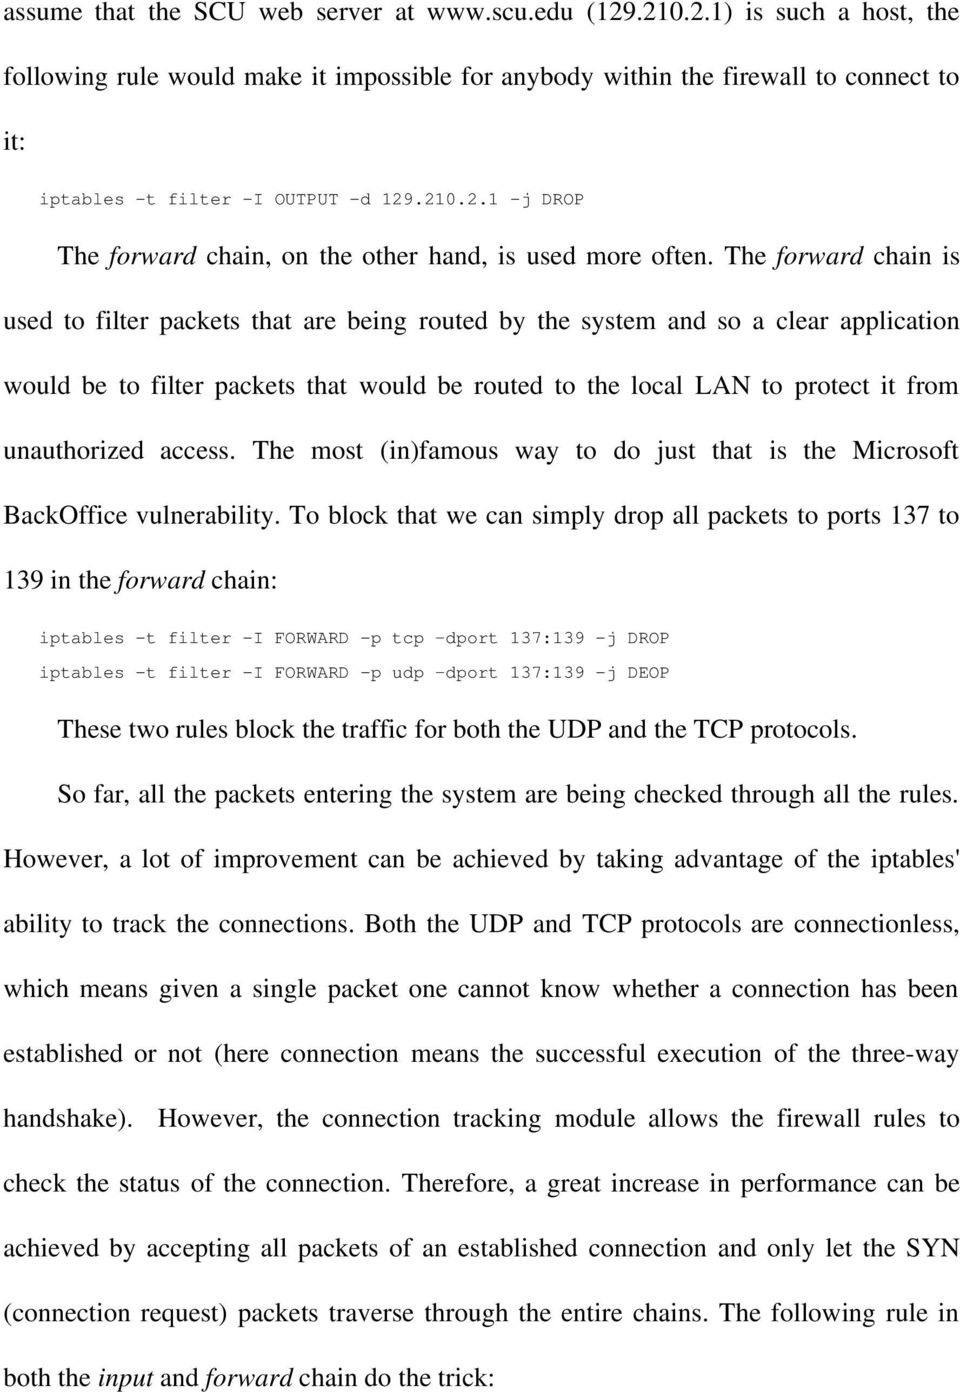 The forward chain is used to filter packets that are being routed by the system and so a clear application would be to filter packets that would be routed to the local LAN to protect it from